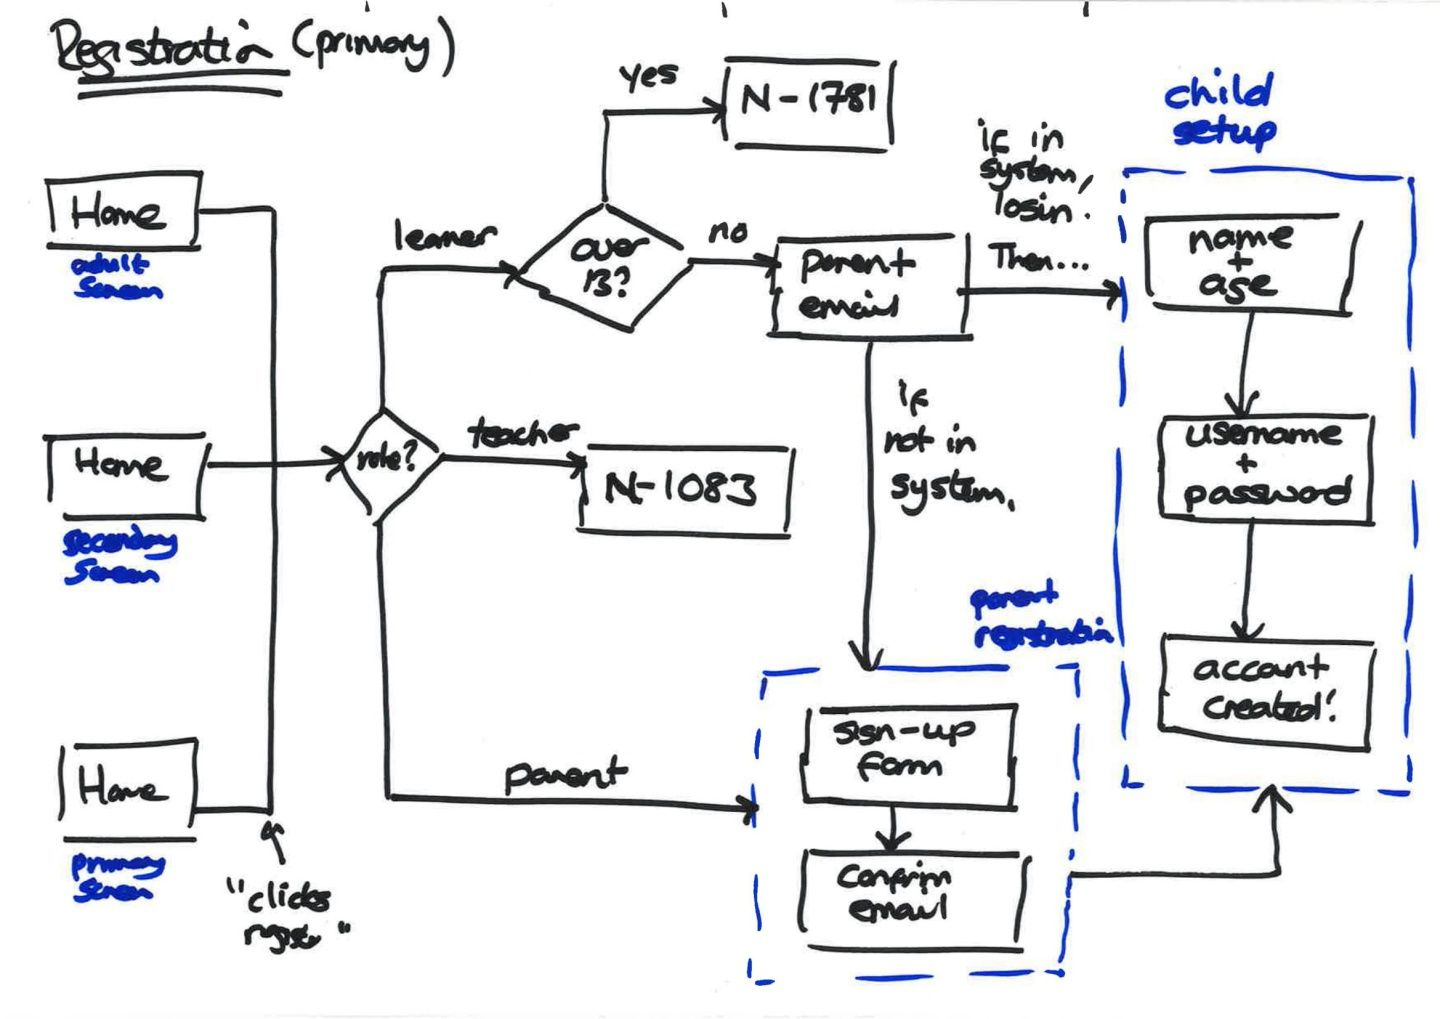 Primary registration initial flow.